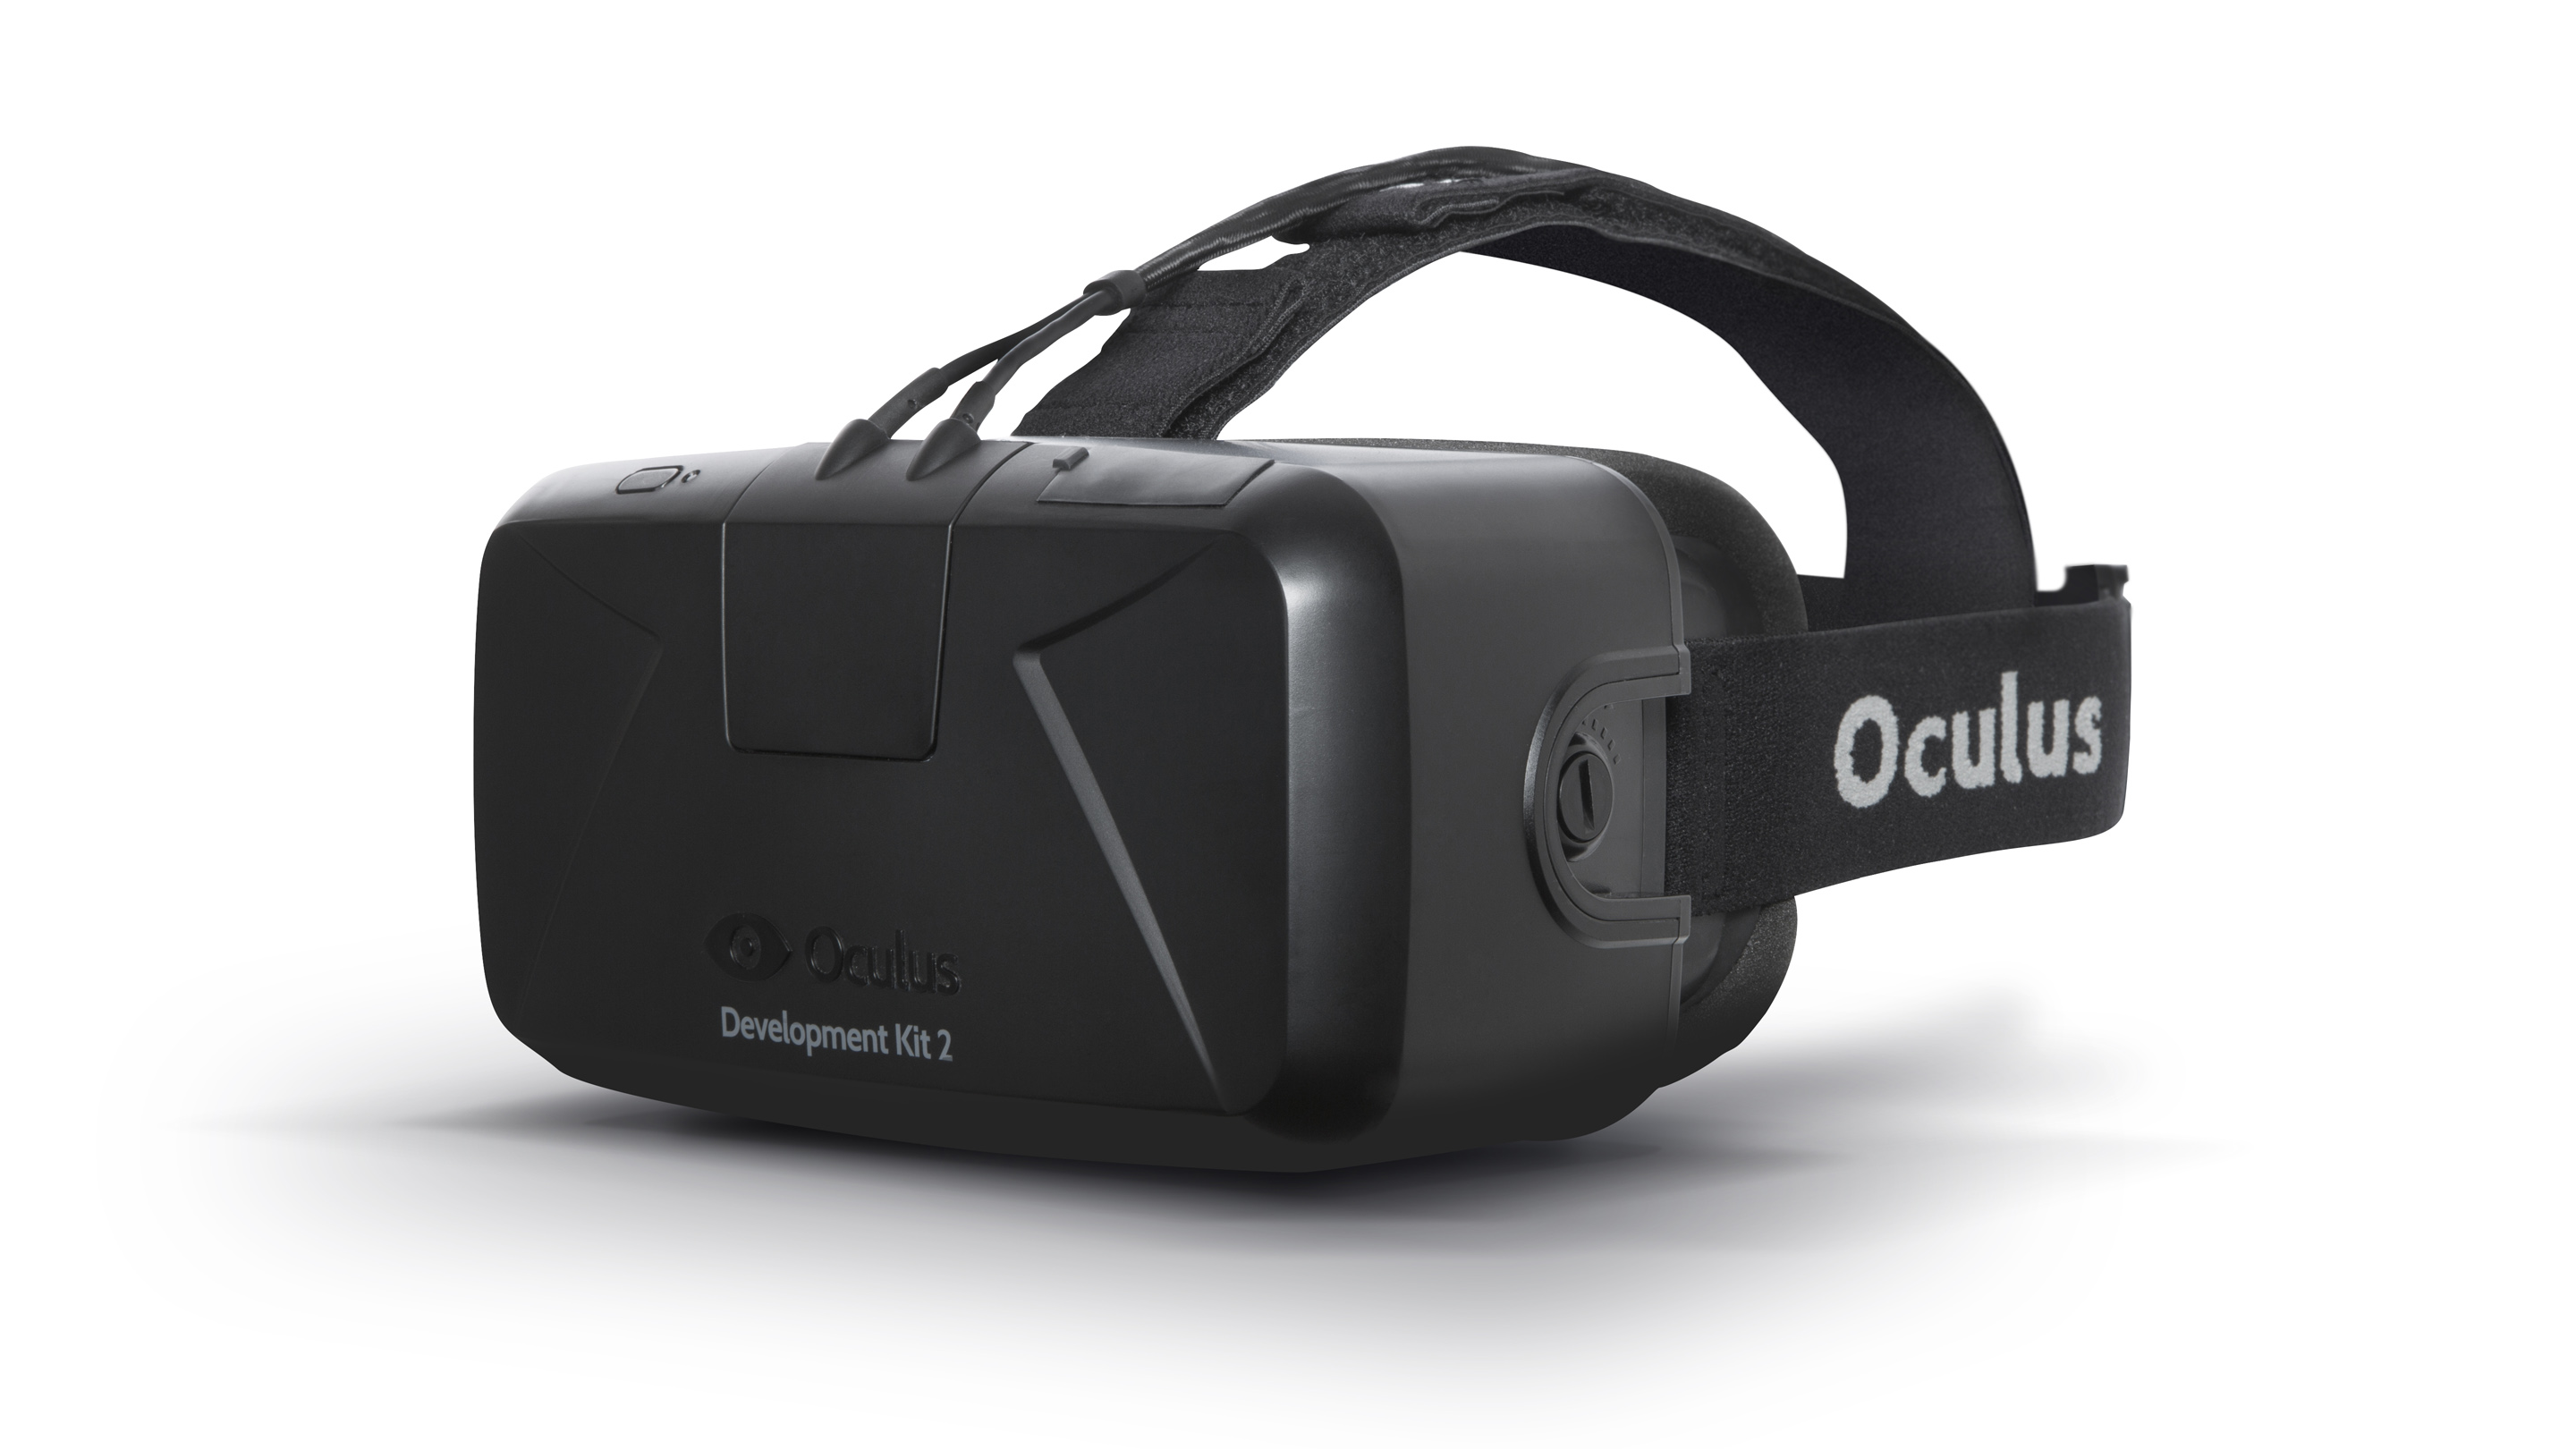 oculus-rift-dev-kit-21